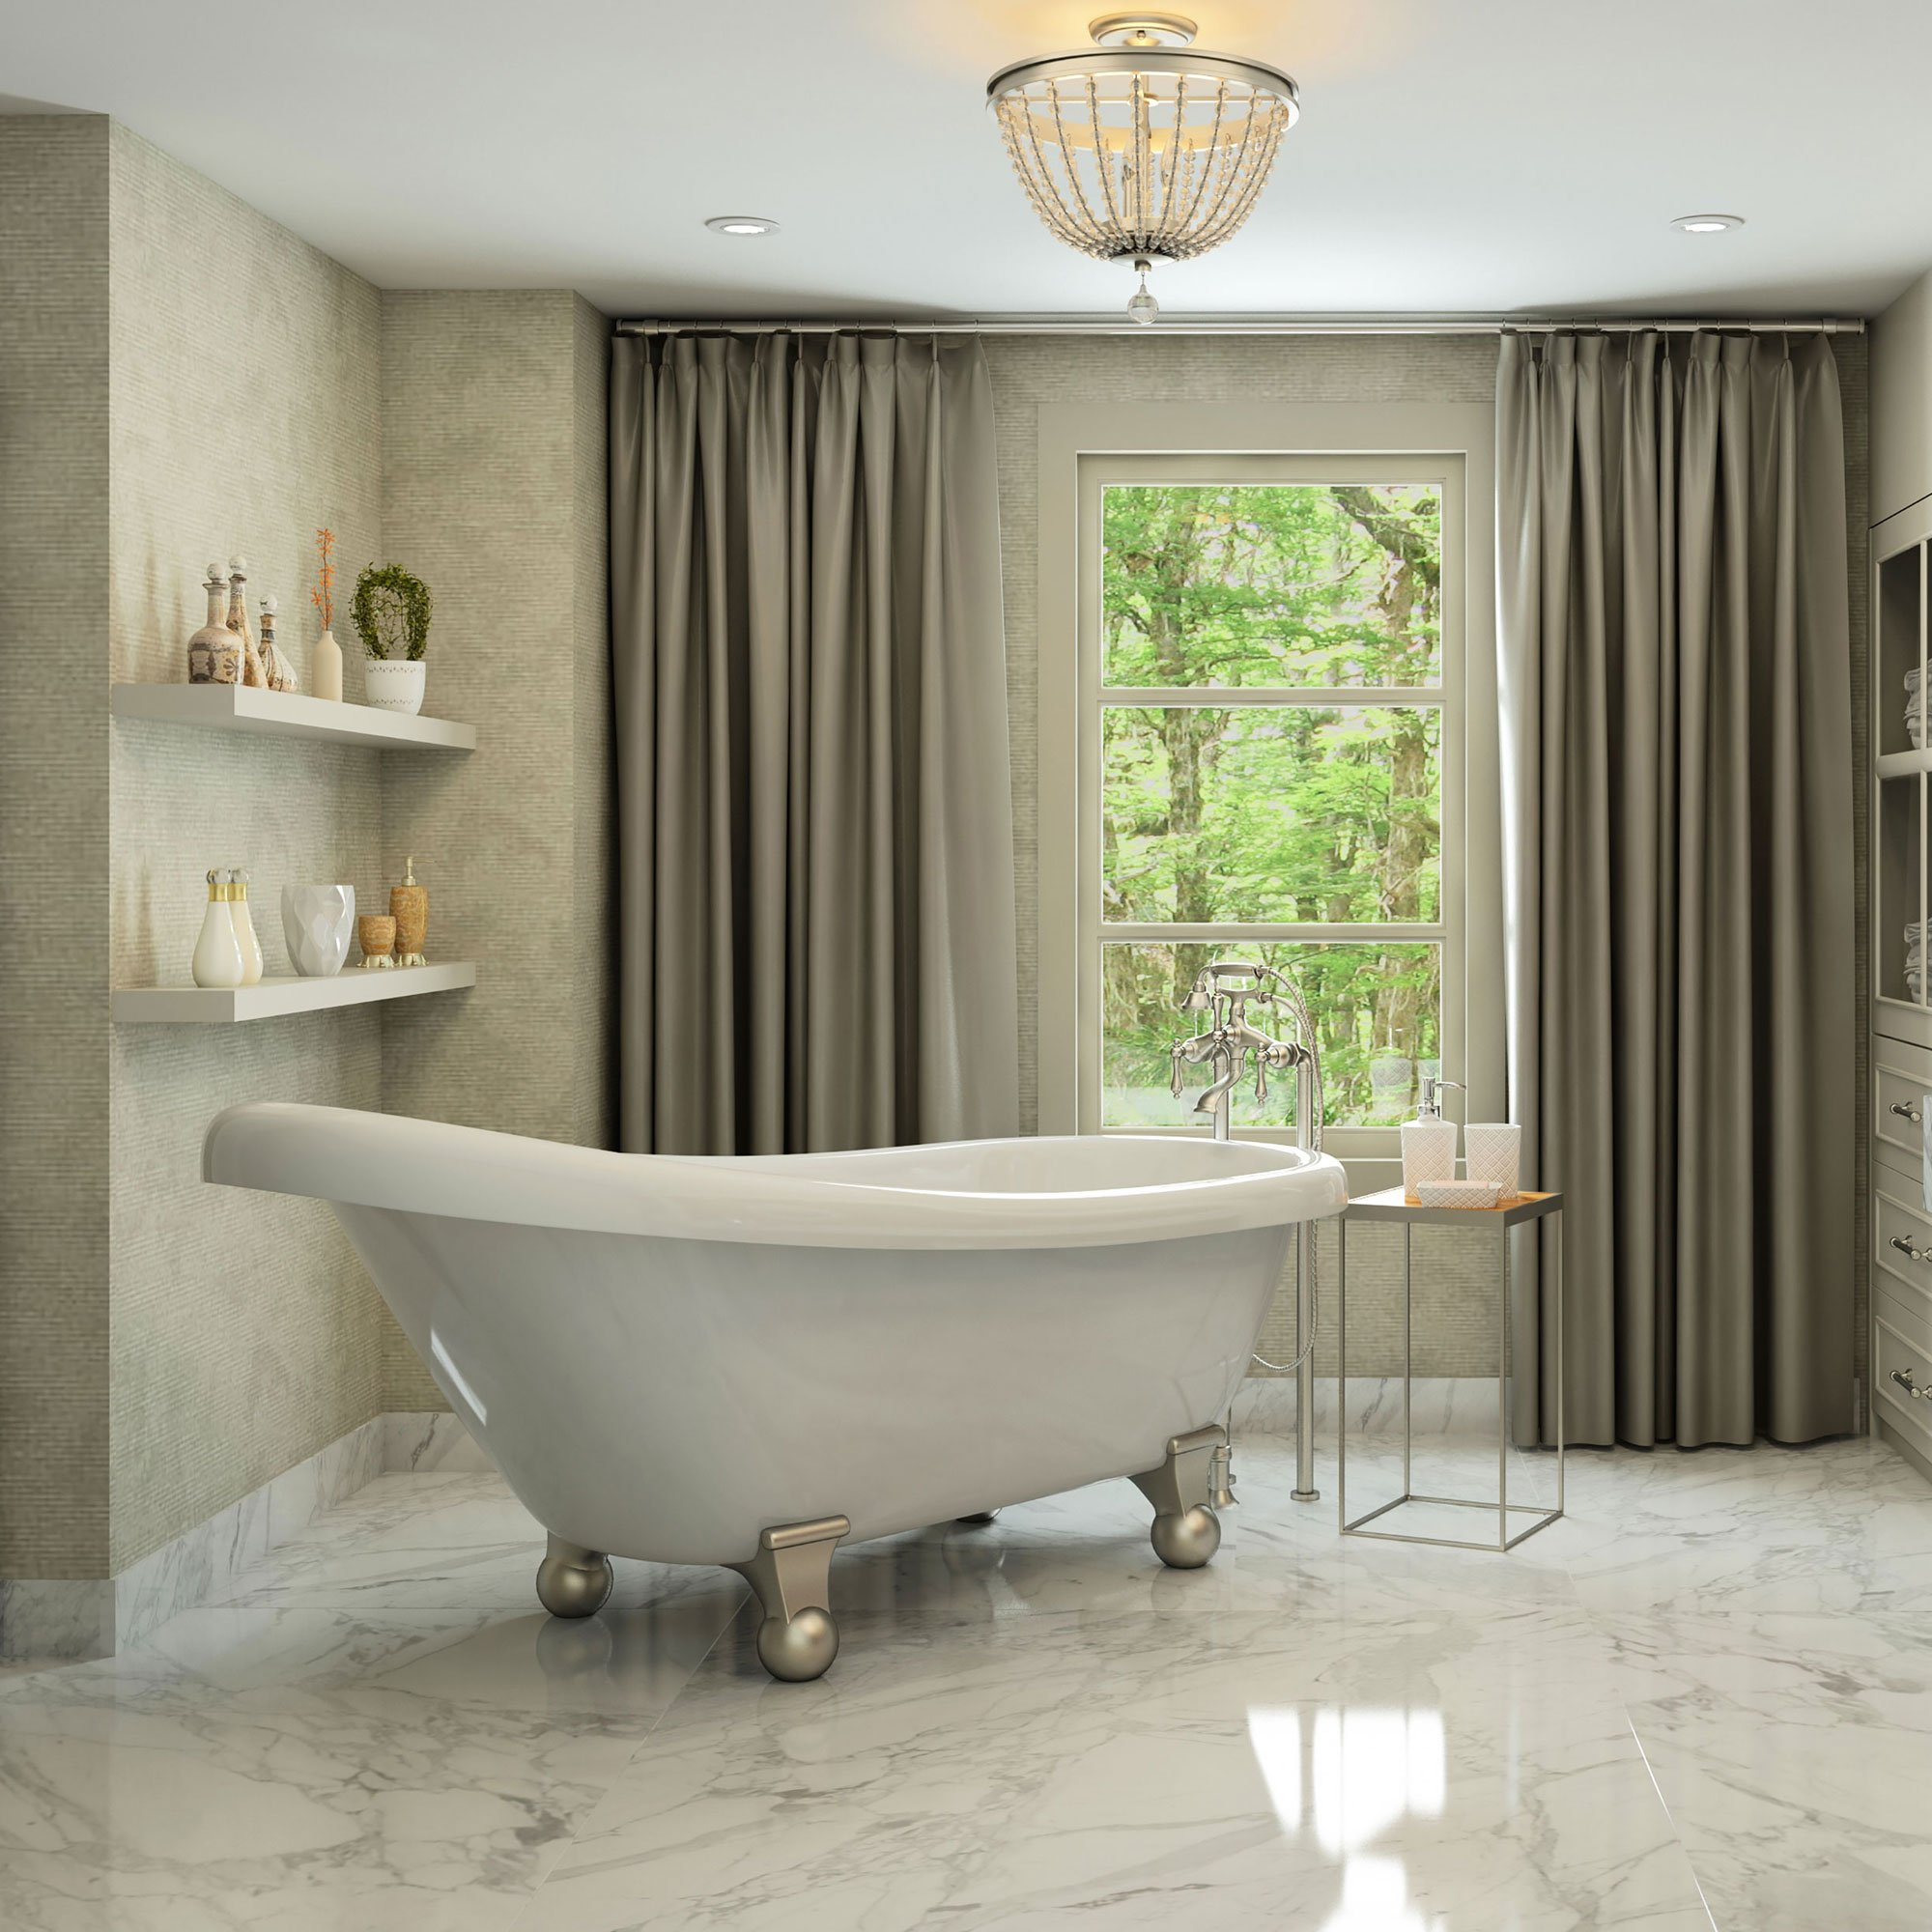 Luxury 60 inch Modern Clawfoot Tub in White with Stand-Alone Freestanding Tub Design, Includes Modern Brushed Nickel Cannonball Feet and Drain, From The Brookdale Collection